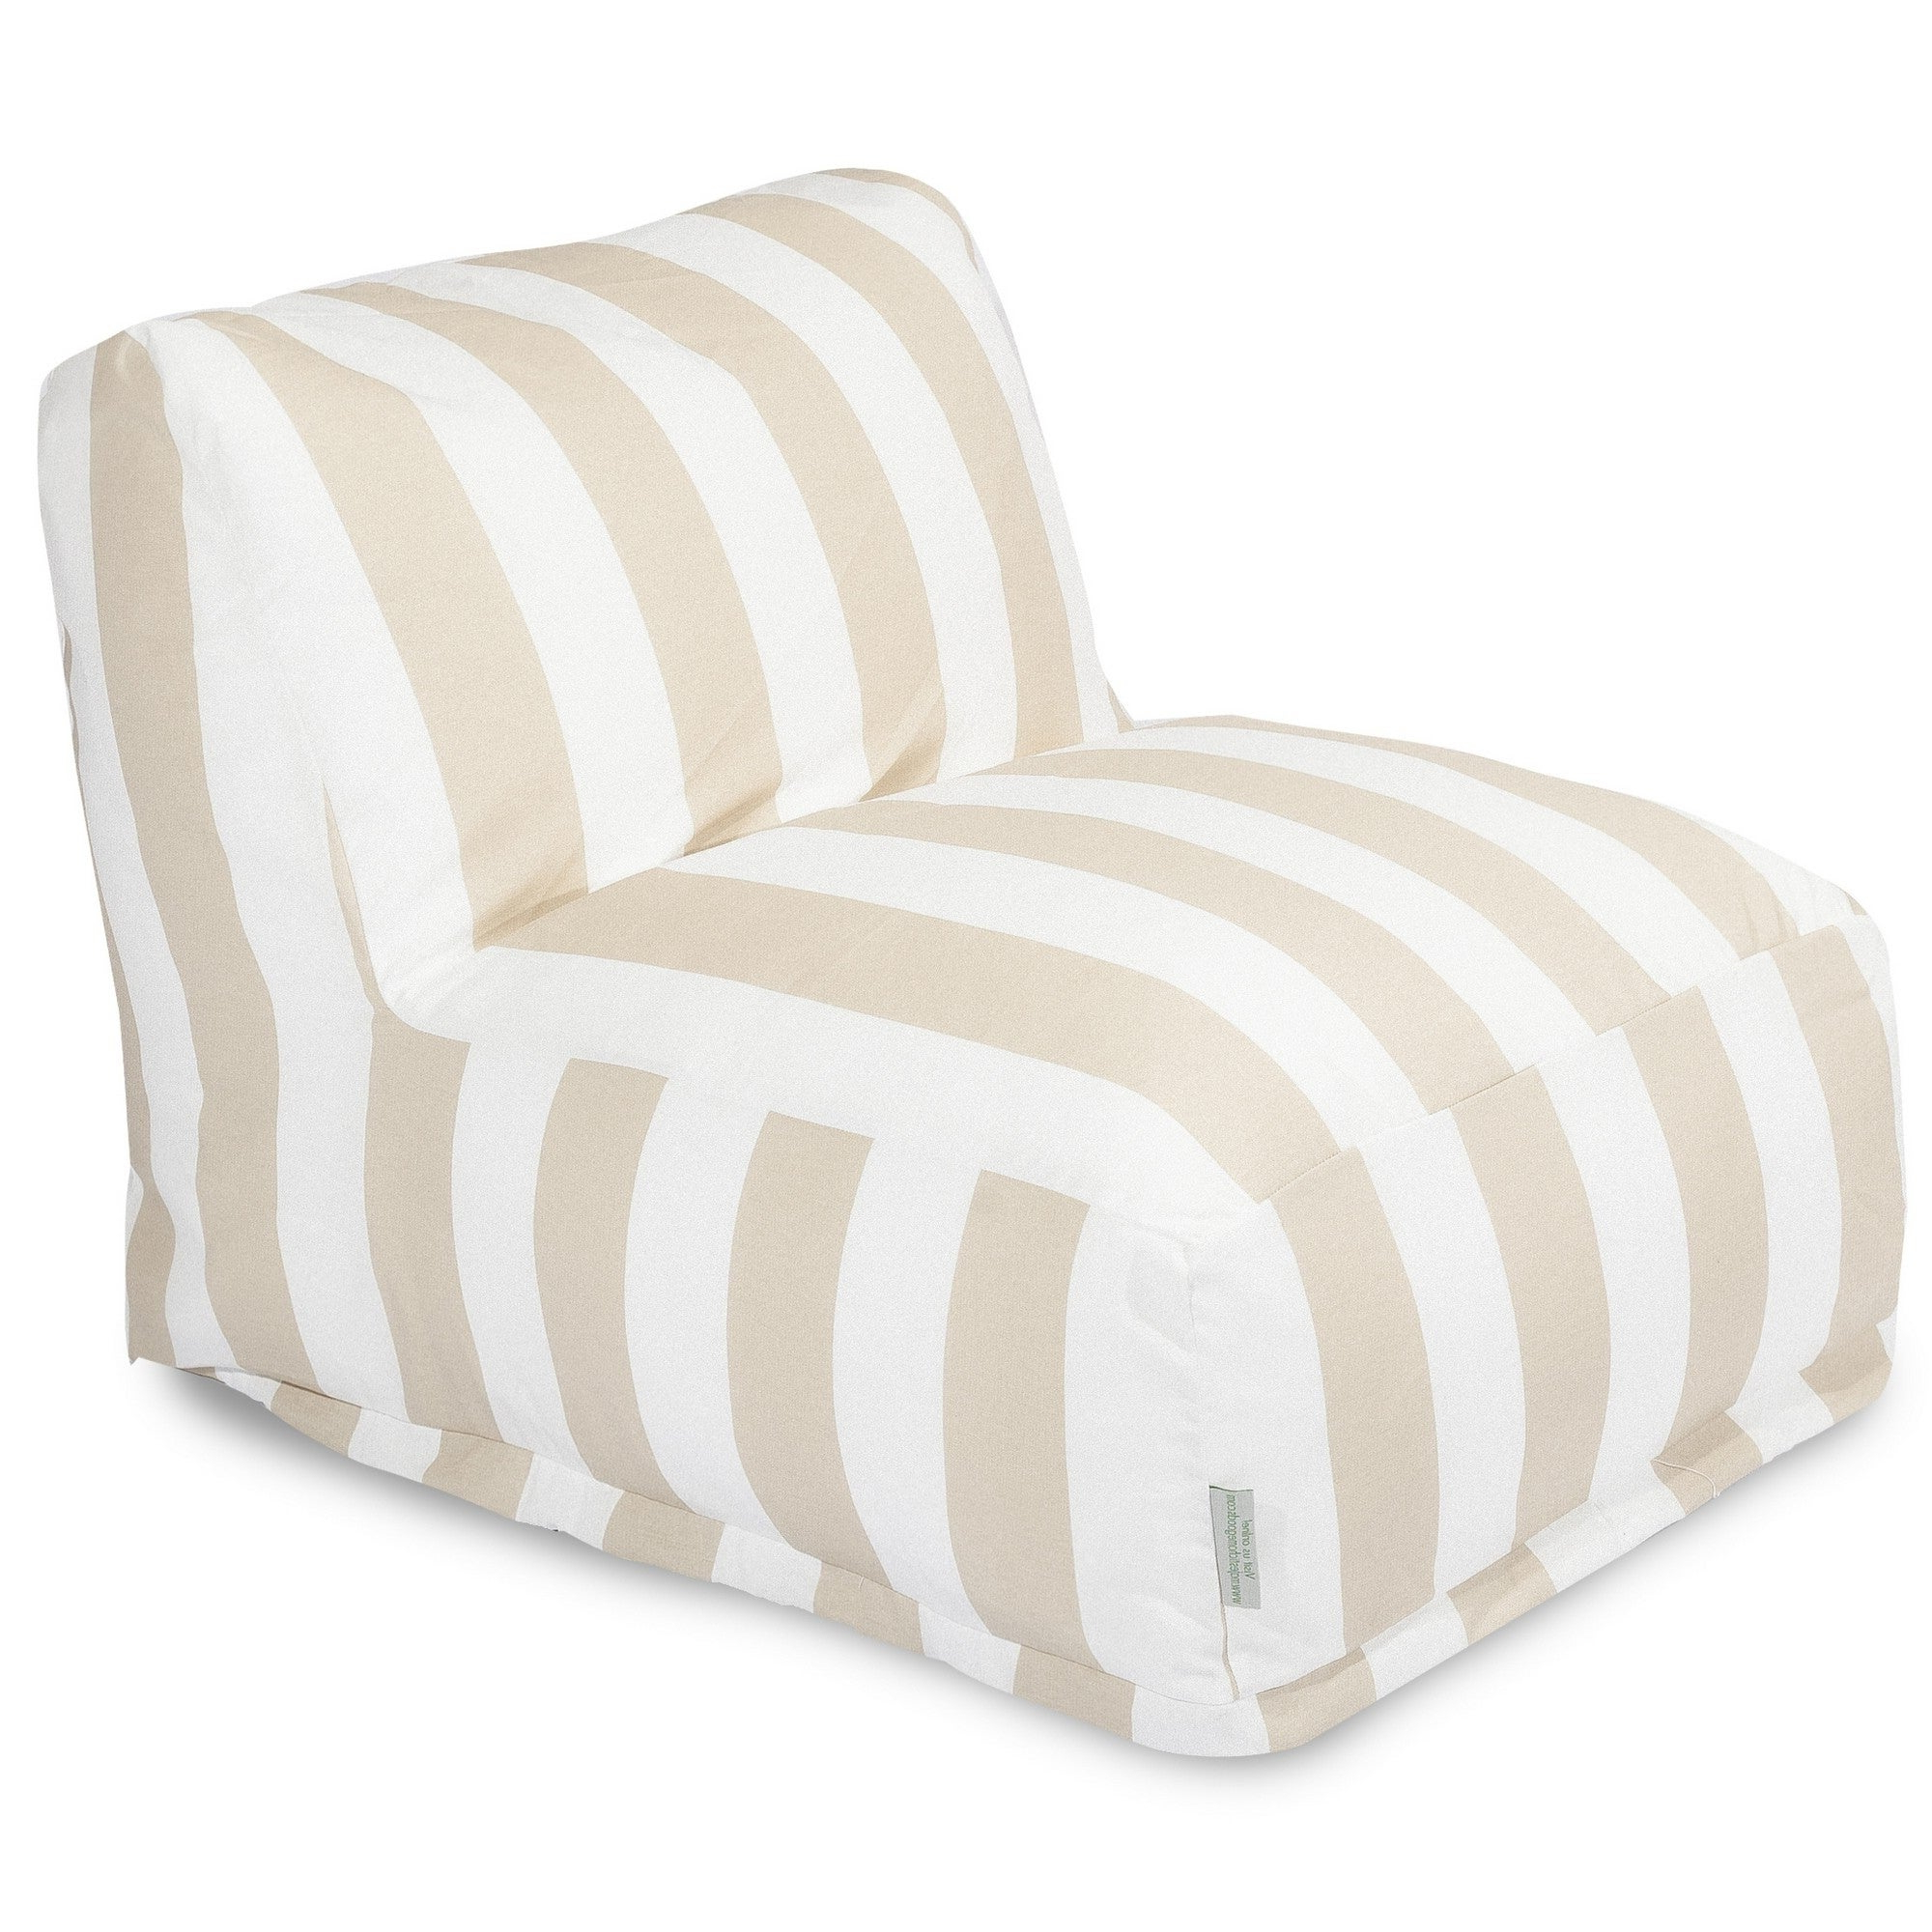 Widely Used Majestic Home Goods Indoor Outdoor Vertical Stripe Bean Bag Chair Lounger 36 In L X 27 In W X 24 In H With Regard To Indoor/outdoor Vertical Stripe Bean Bag Chair Loungers (Gallery 3 of 25)